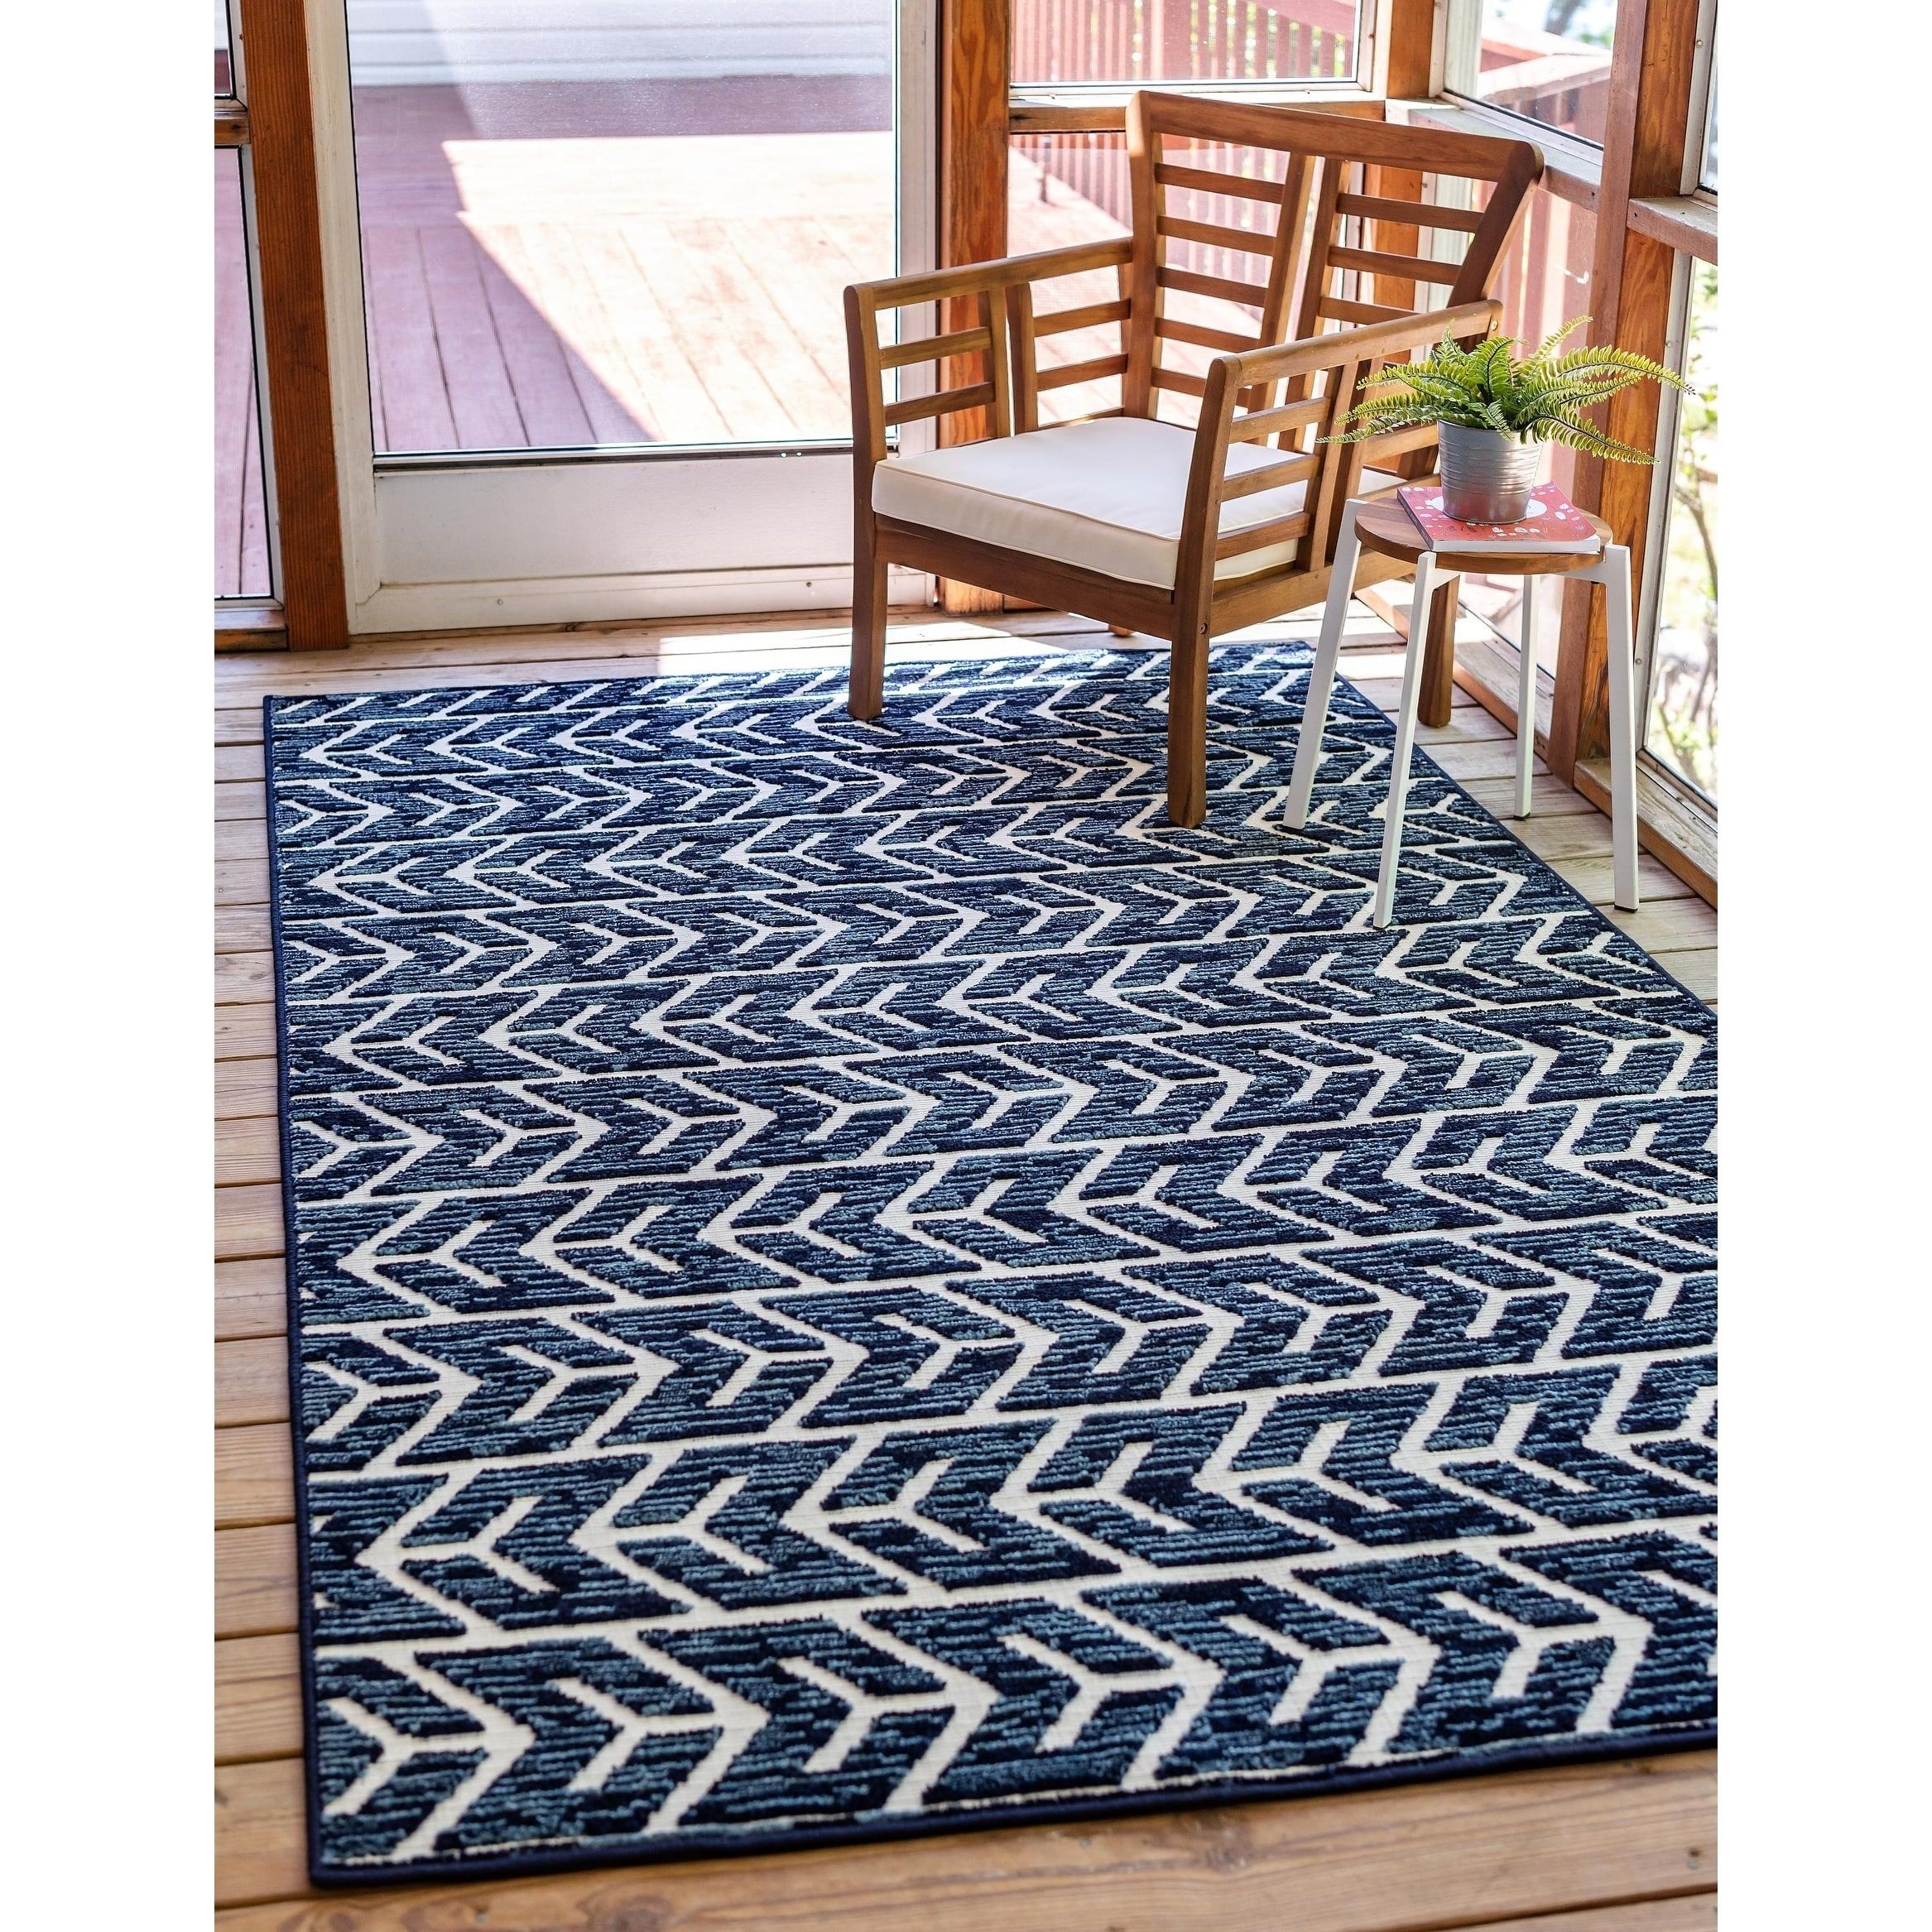 Beige Outdoor Botanical Area Rug Wayfair Outdoor Rugs Botanical Rug Outdoor Rugs Patio